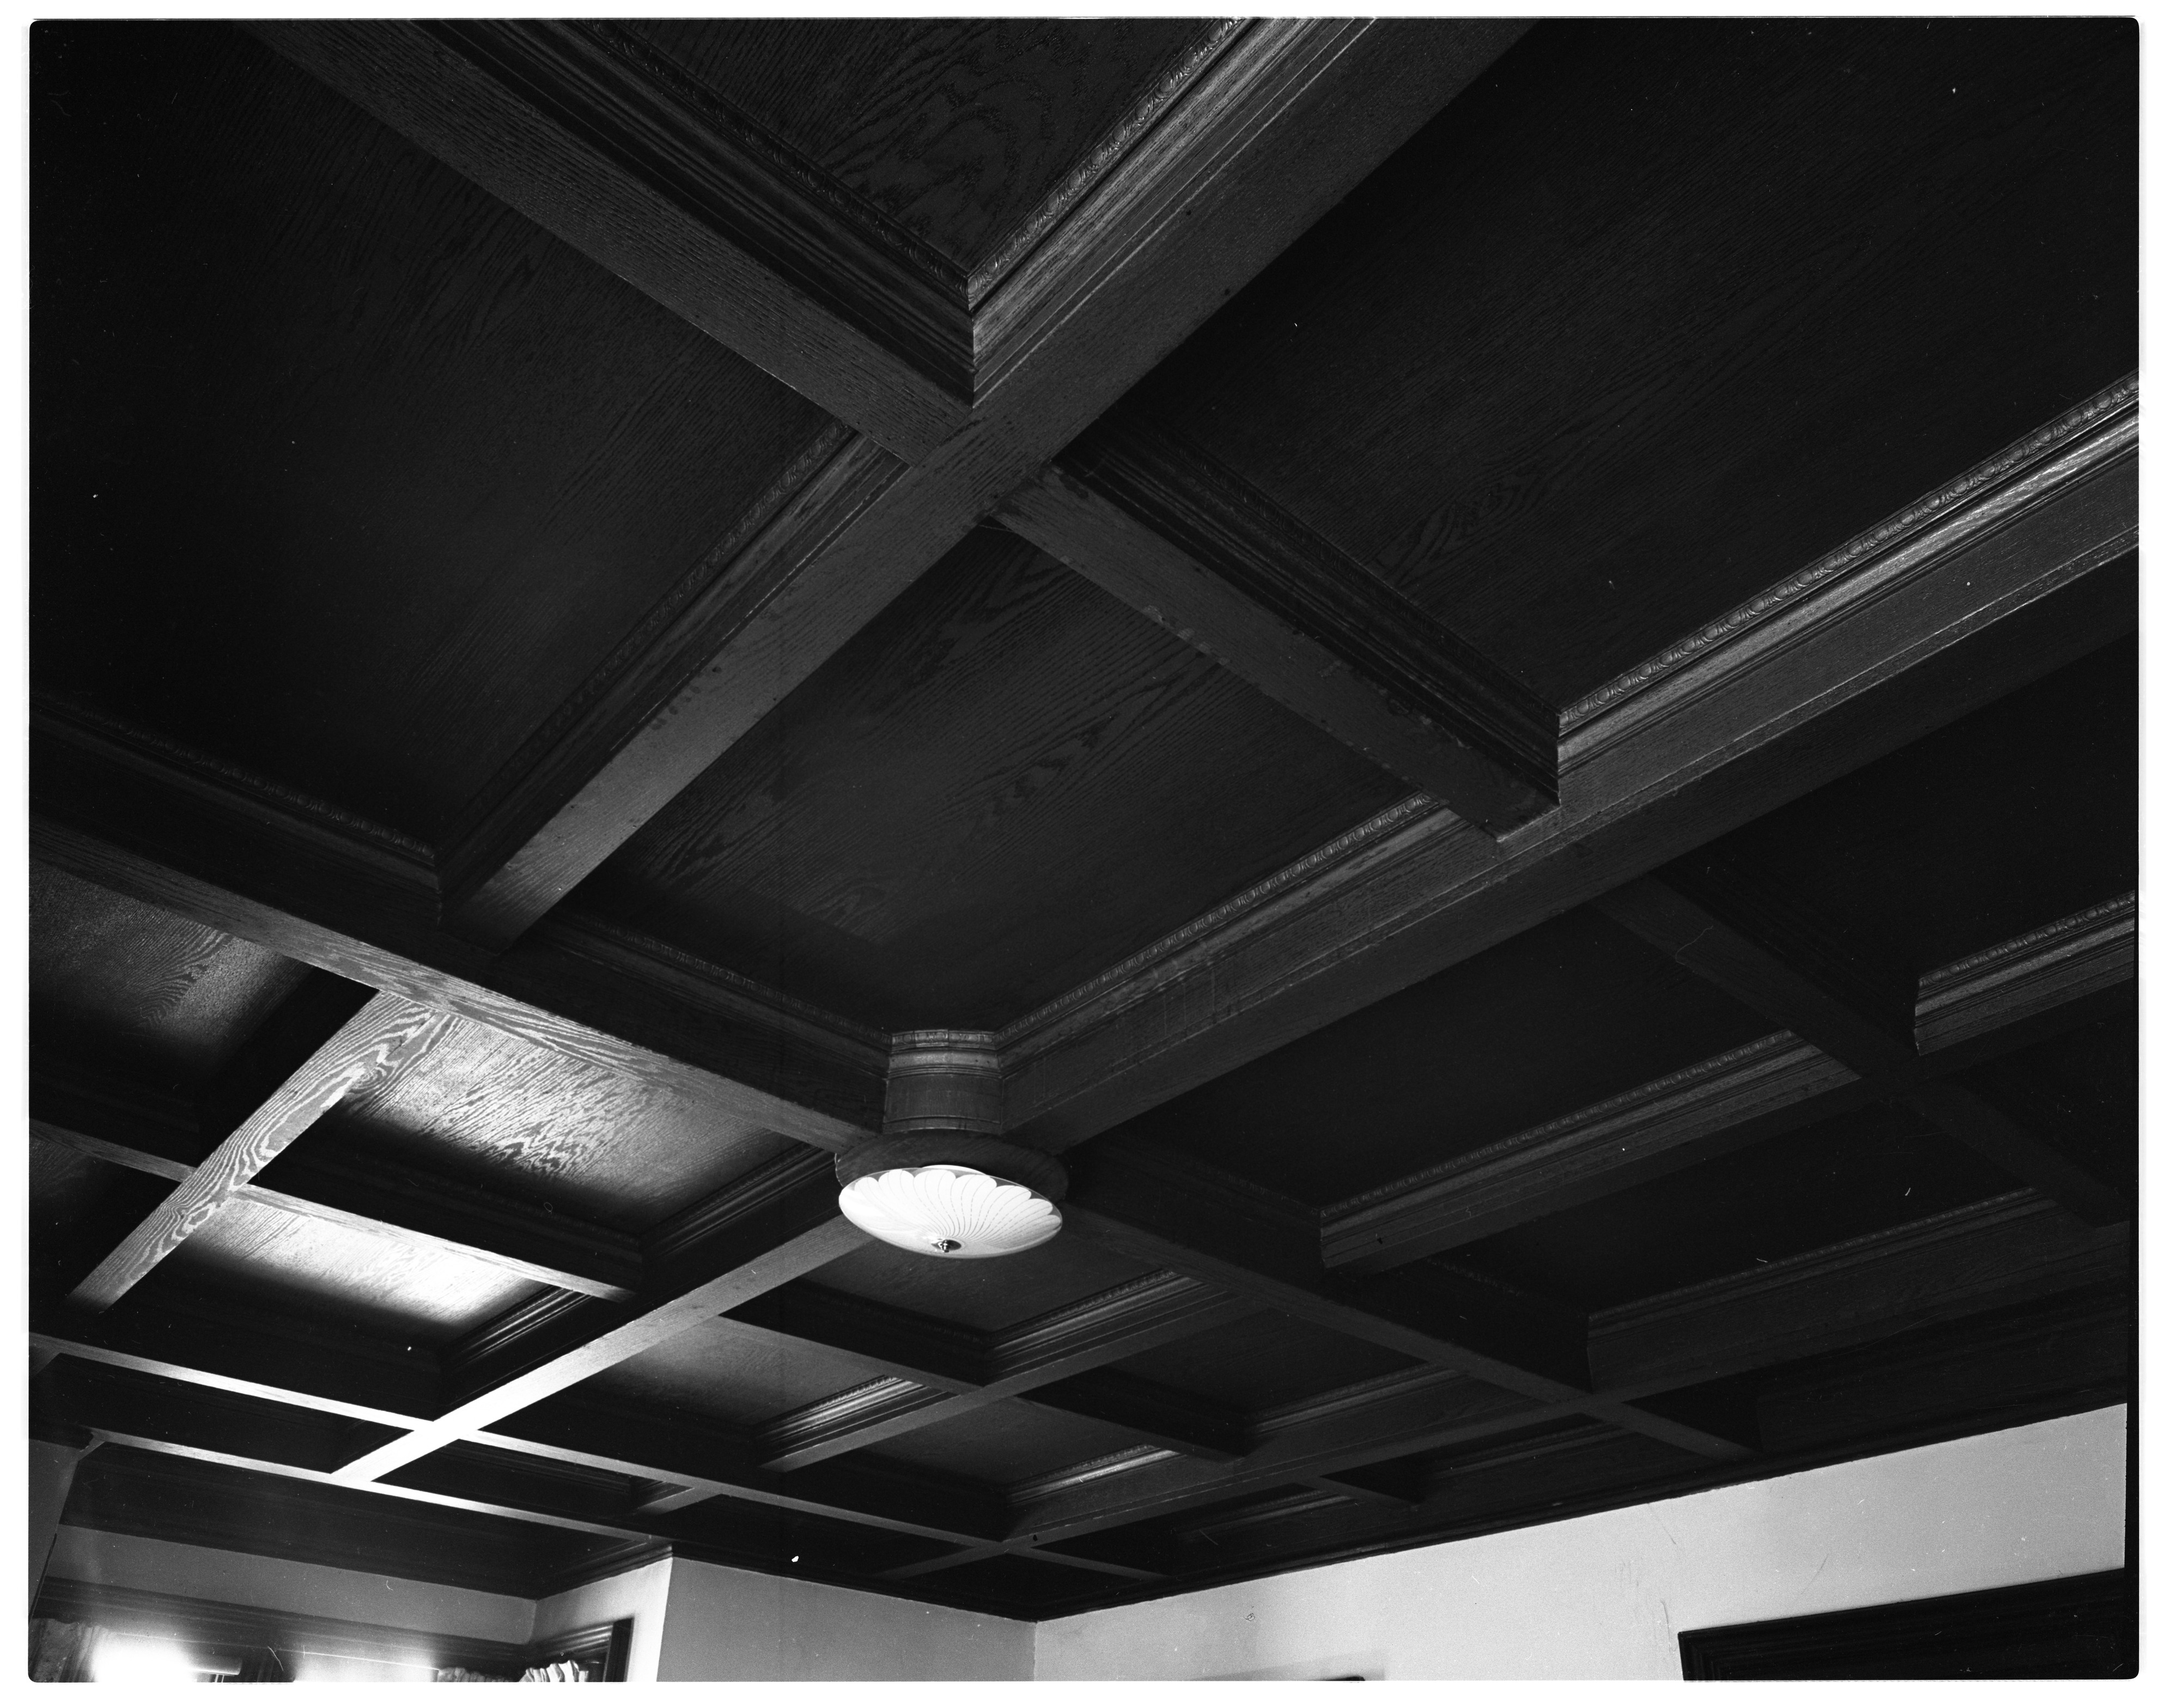 Beal Home, Ceiling Detail, February 1956 image